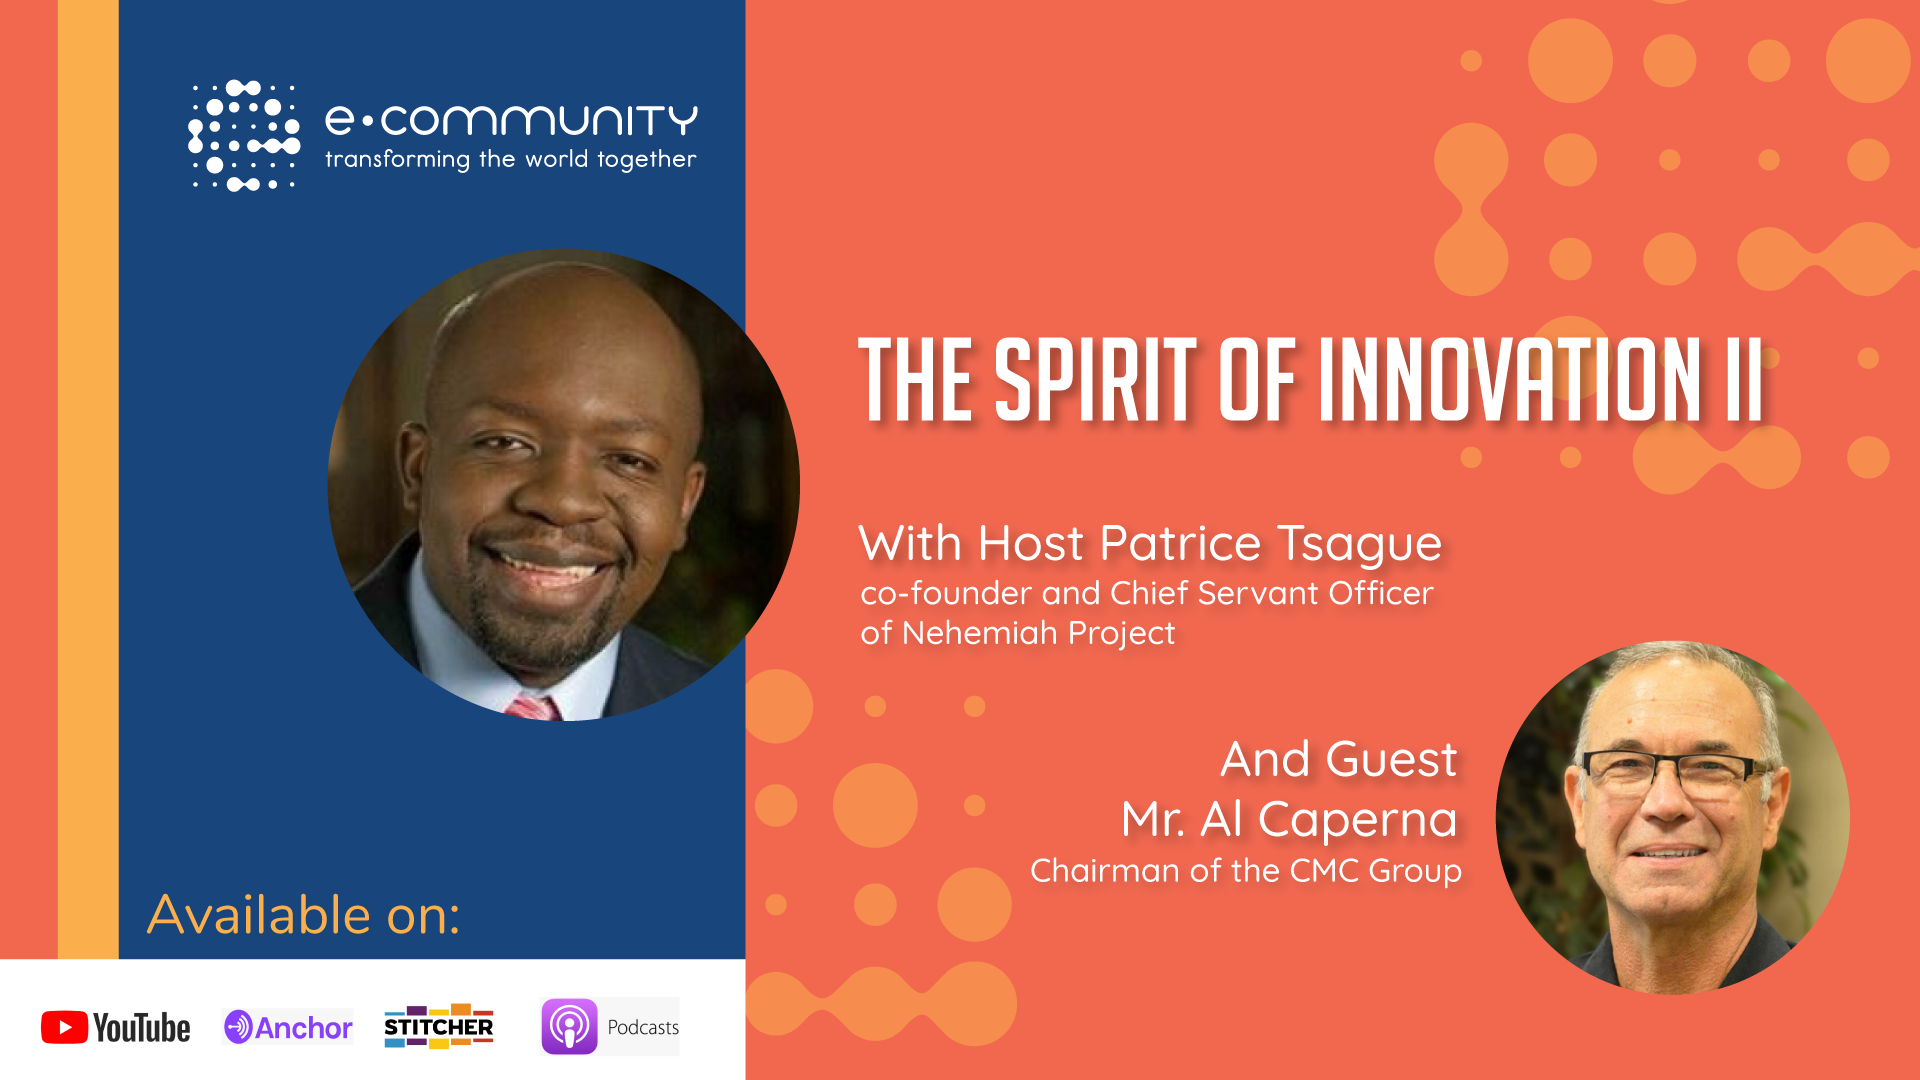 The Spirit of Innovation ii